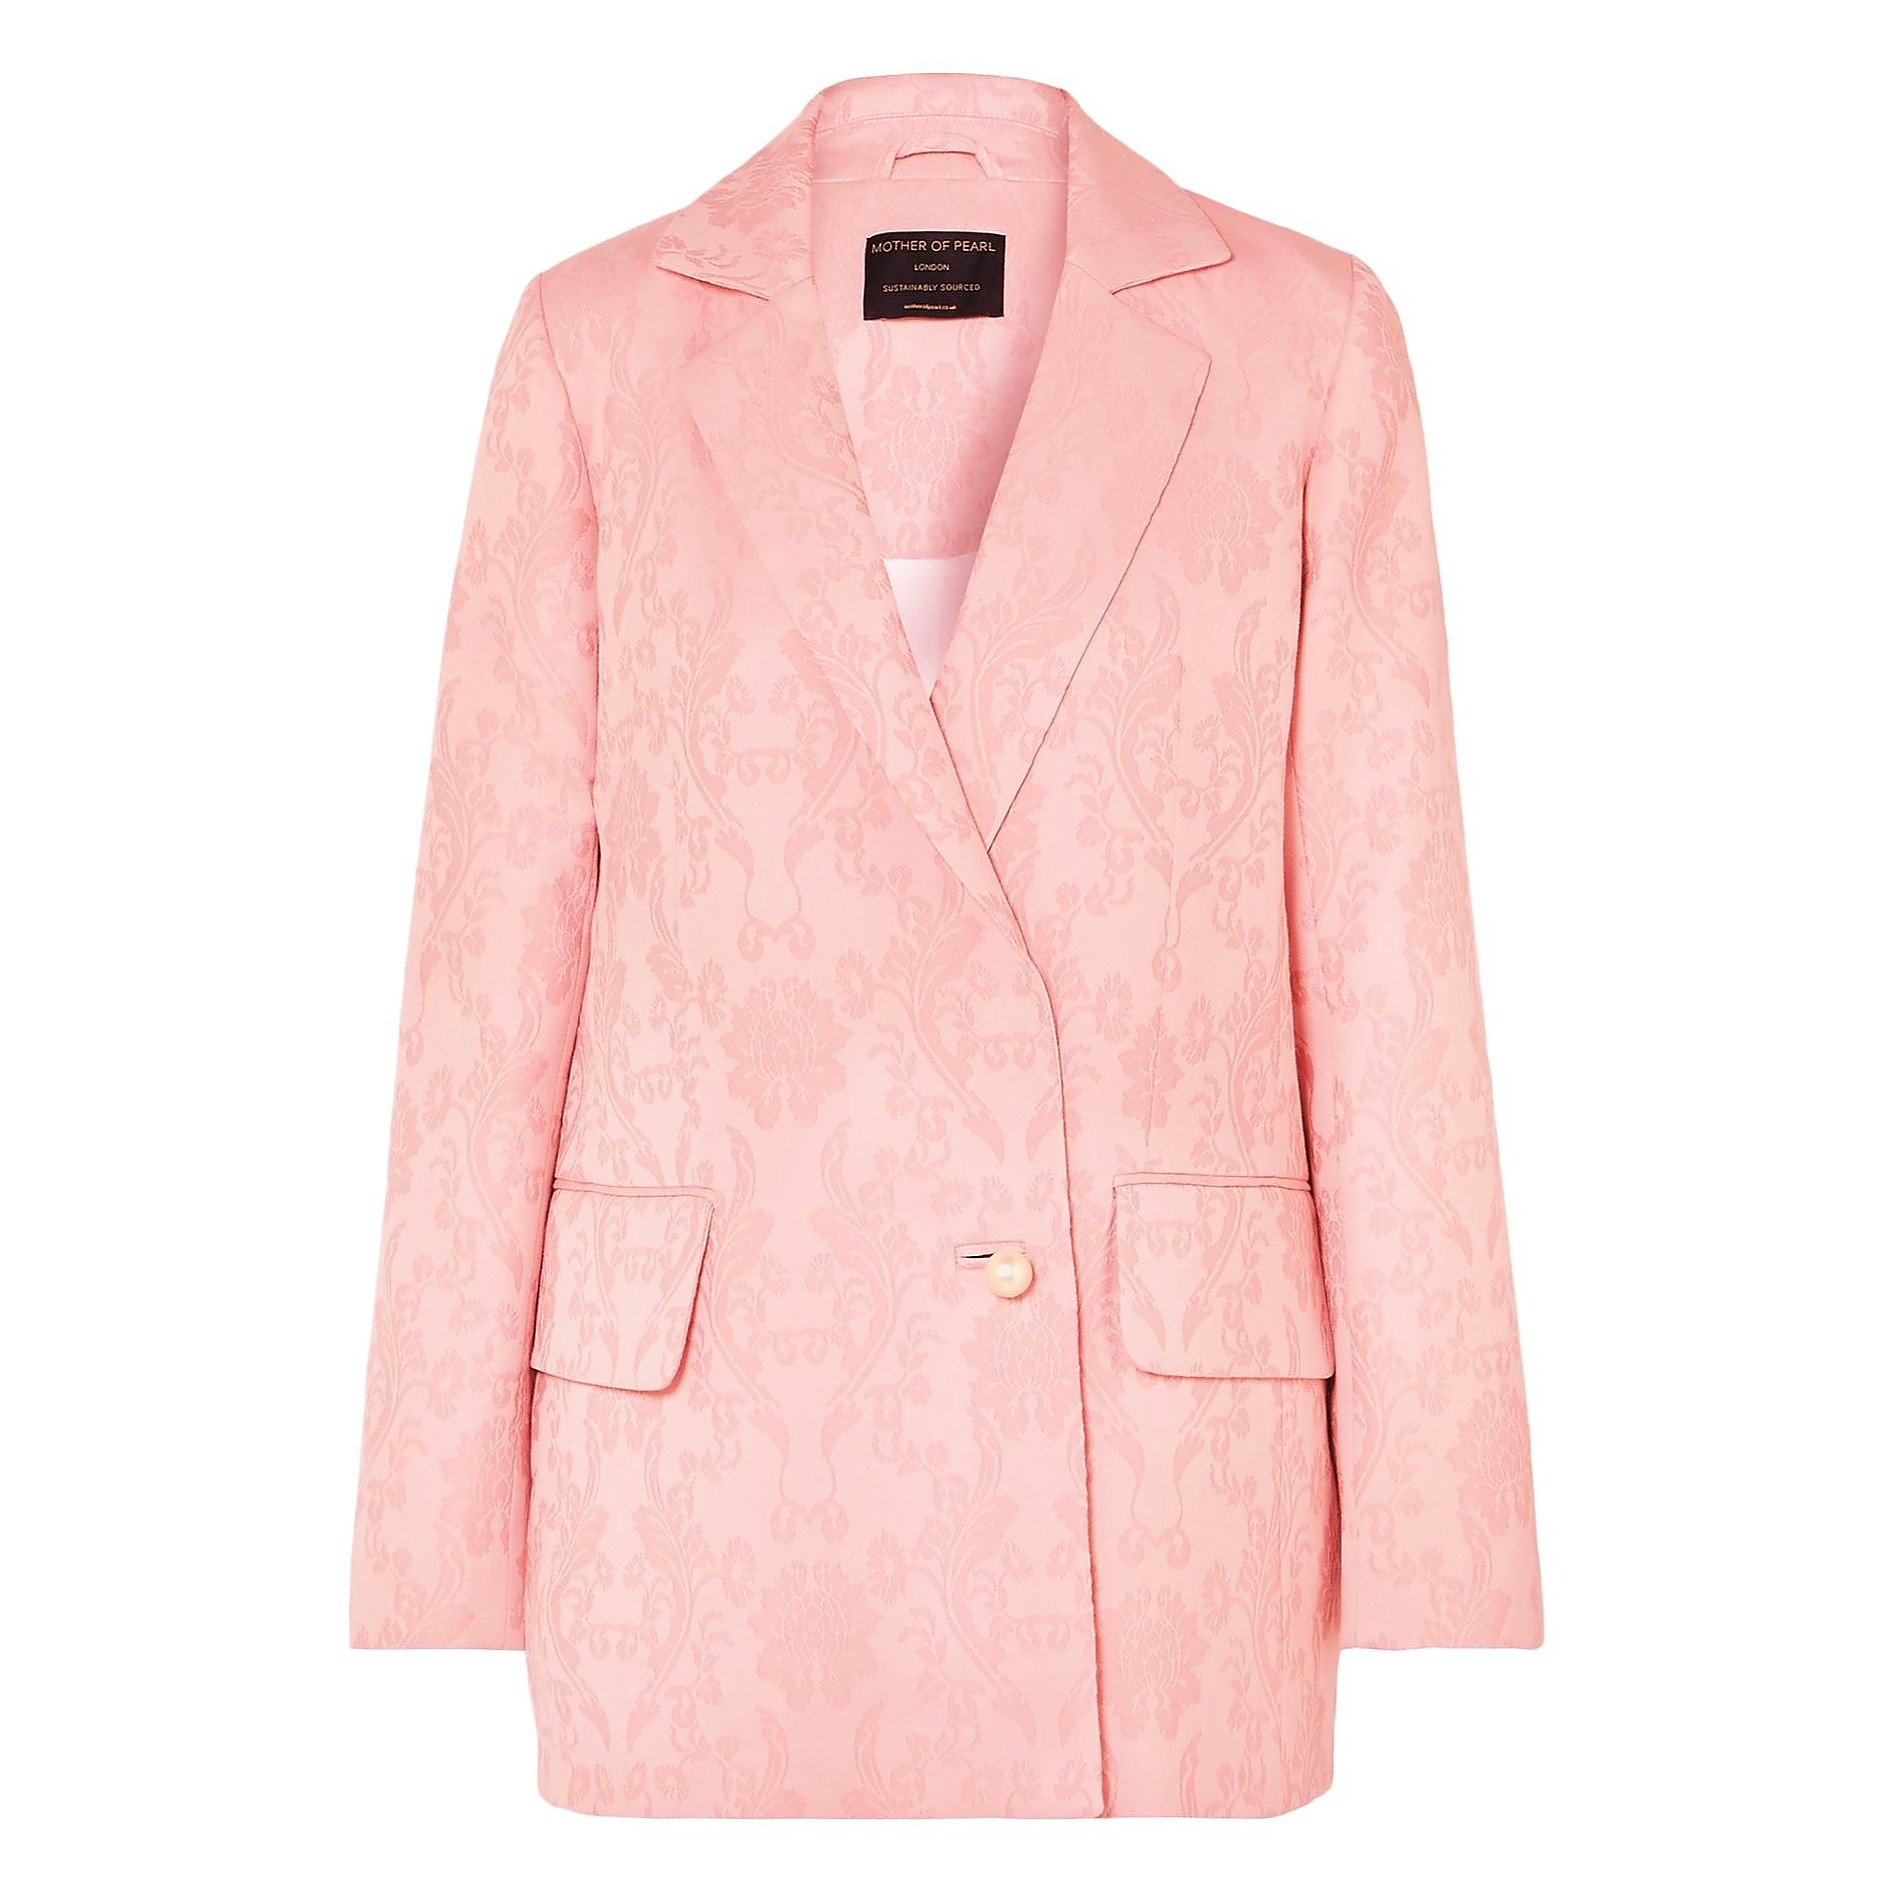 Mother of Pearl Sartorial Jacket